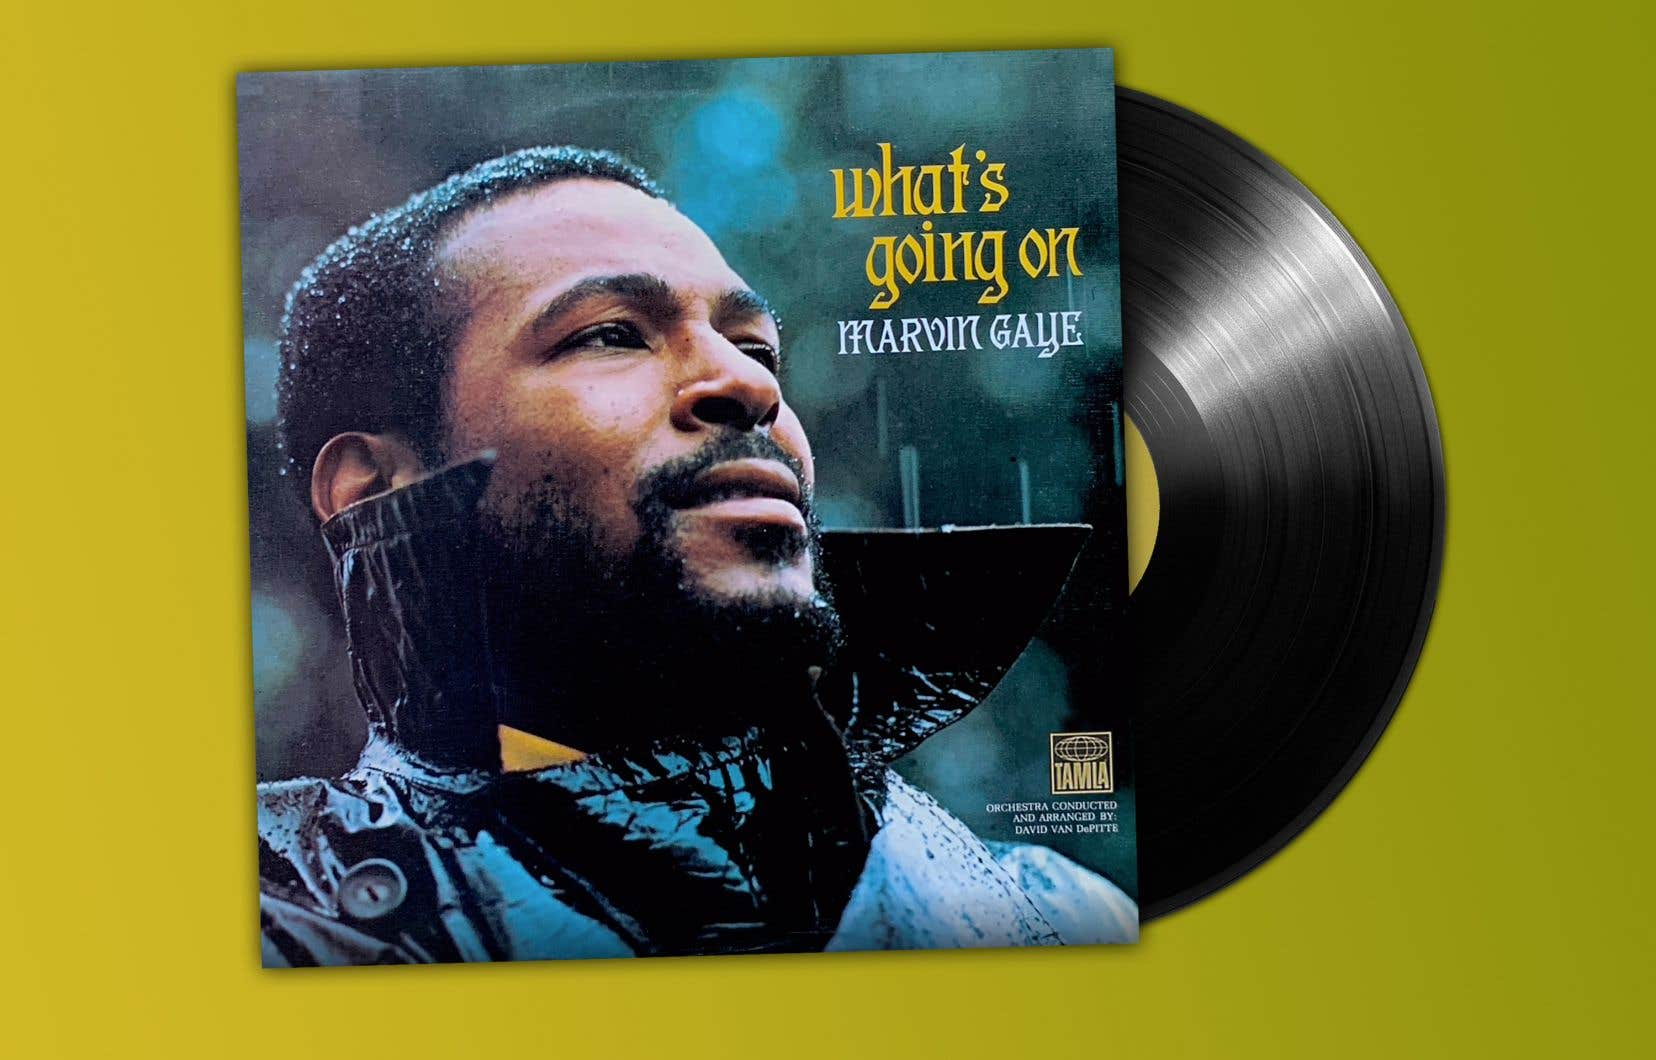 L'album «What's Going On» de Marvin Gaye a détrôné «Sgt. Pepper's Lonely Hearts Club Band» des Beatles.